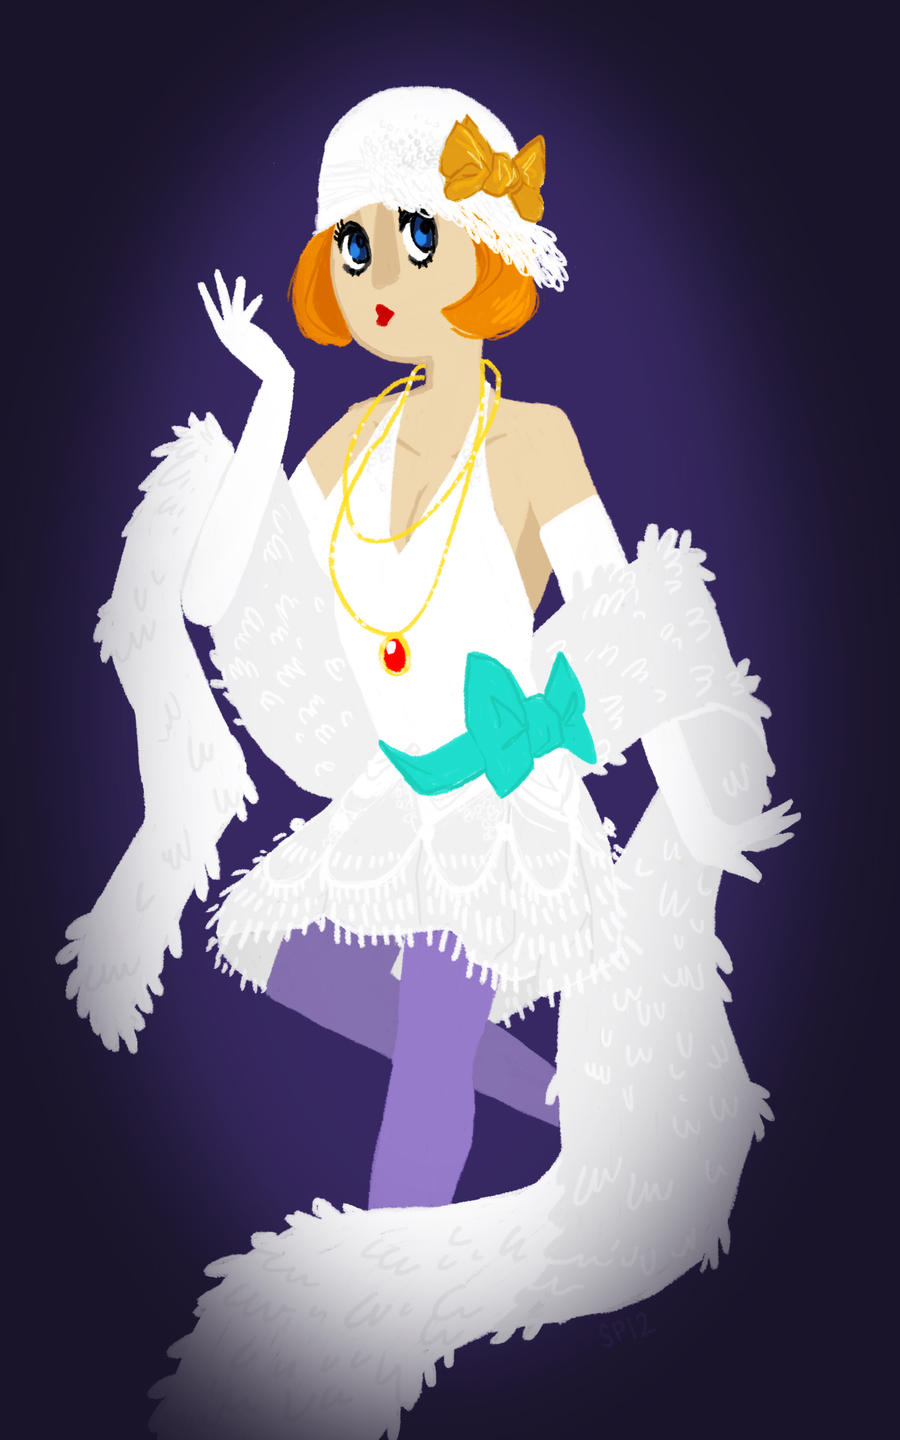 Princess Flapper by missbooyaka